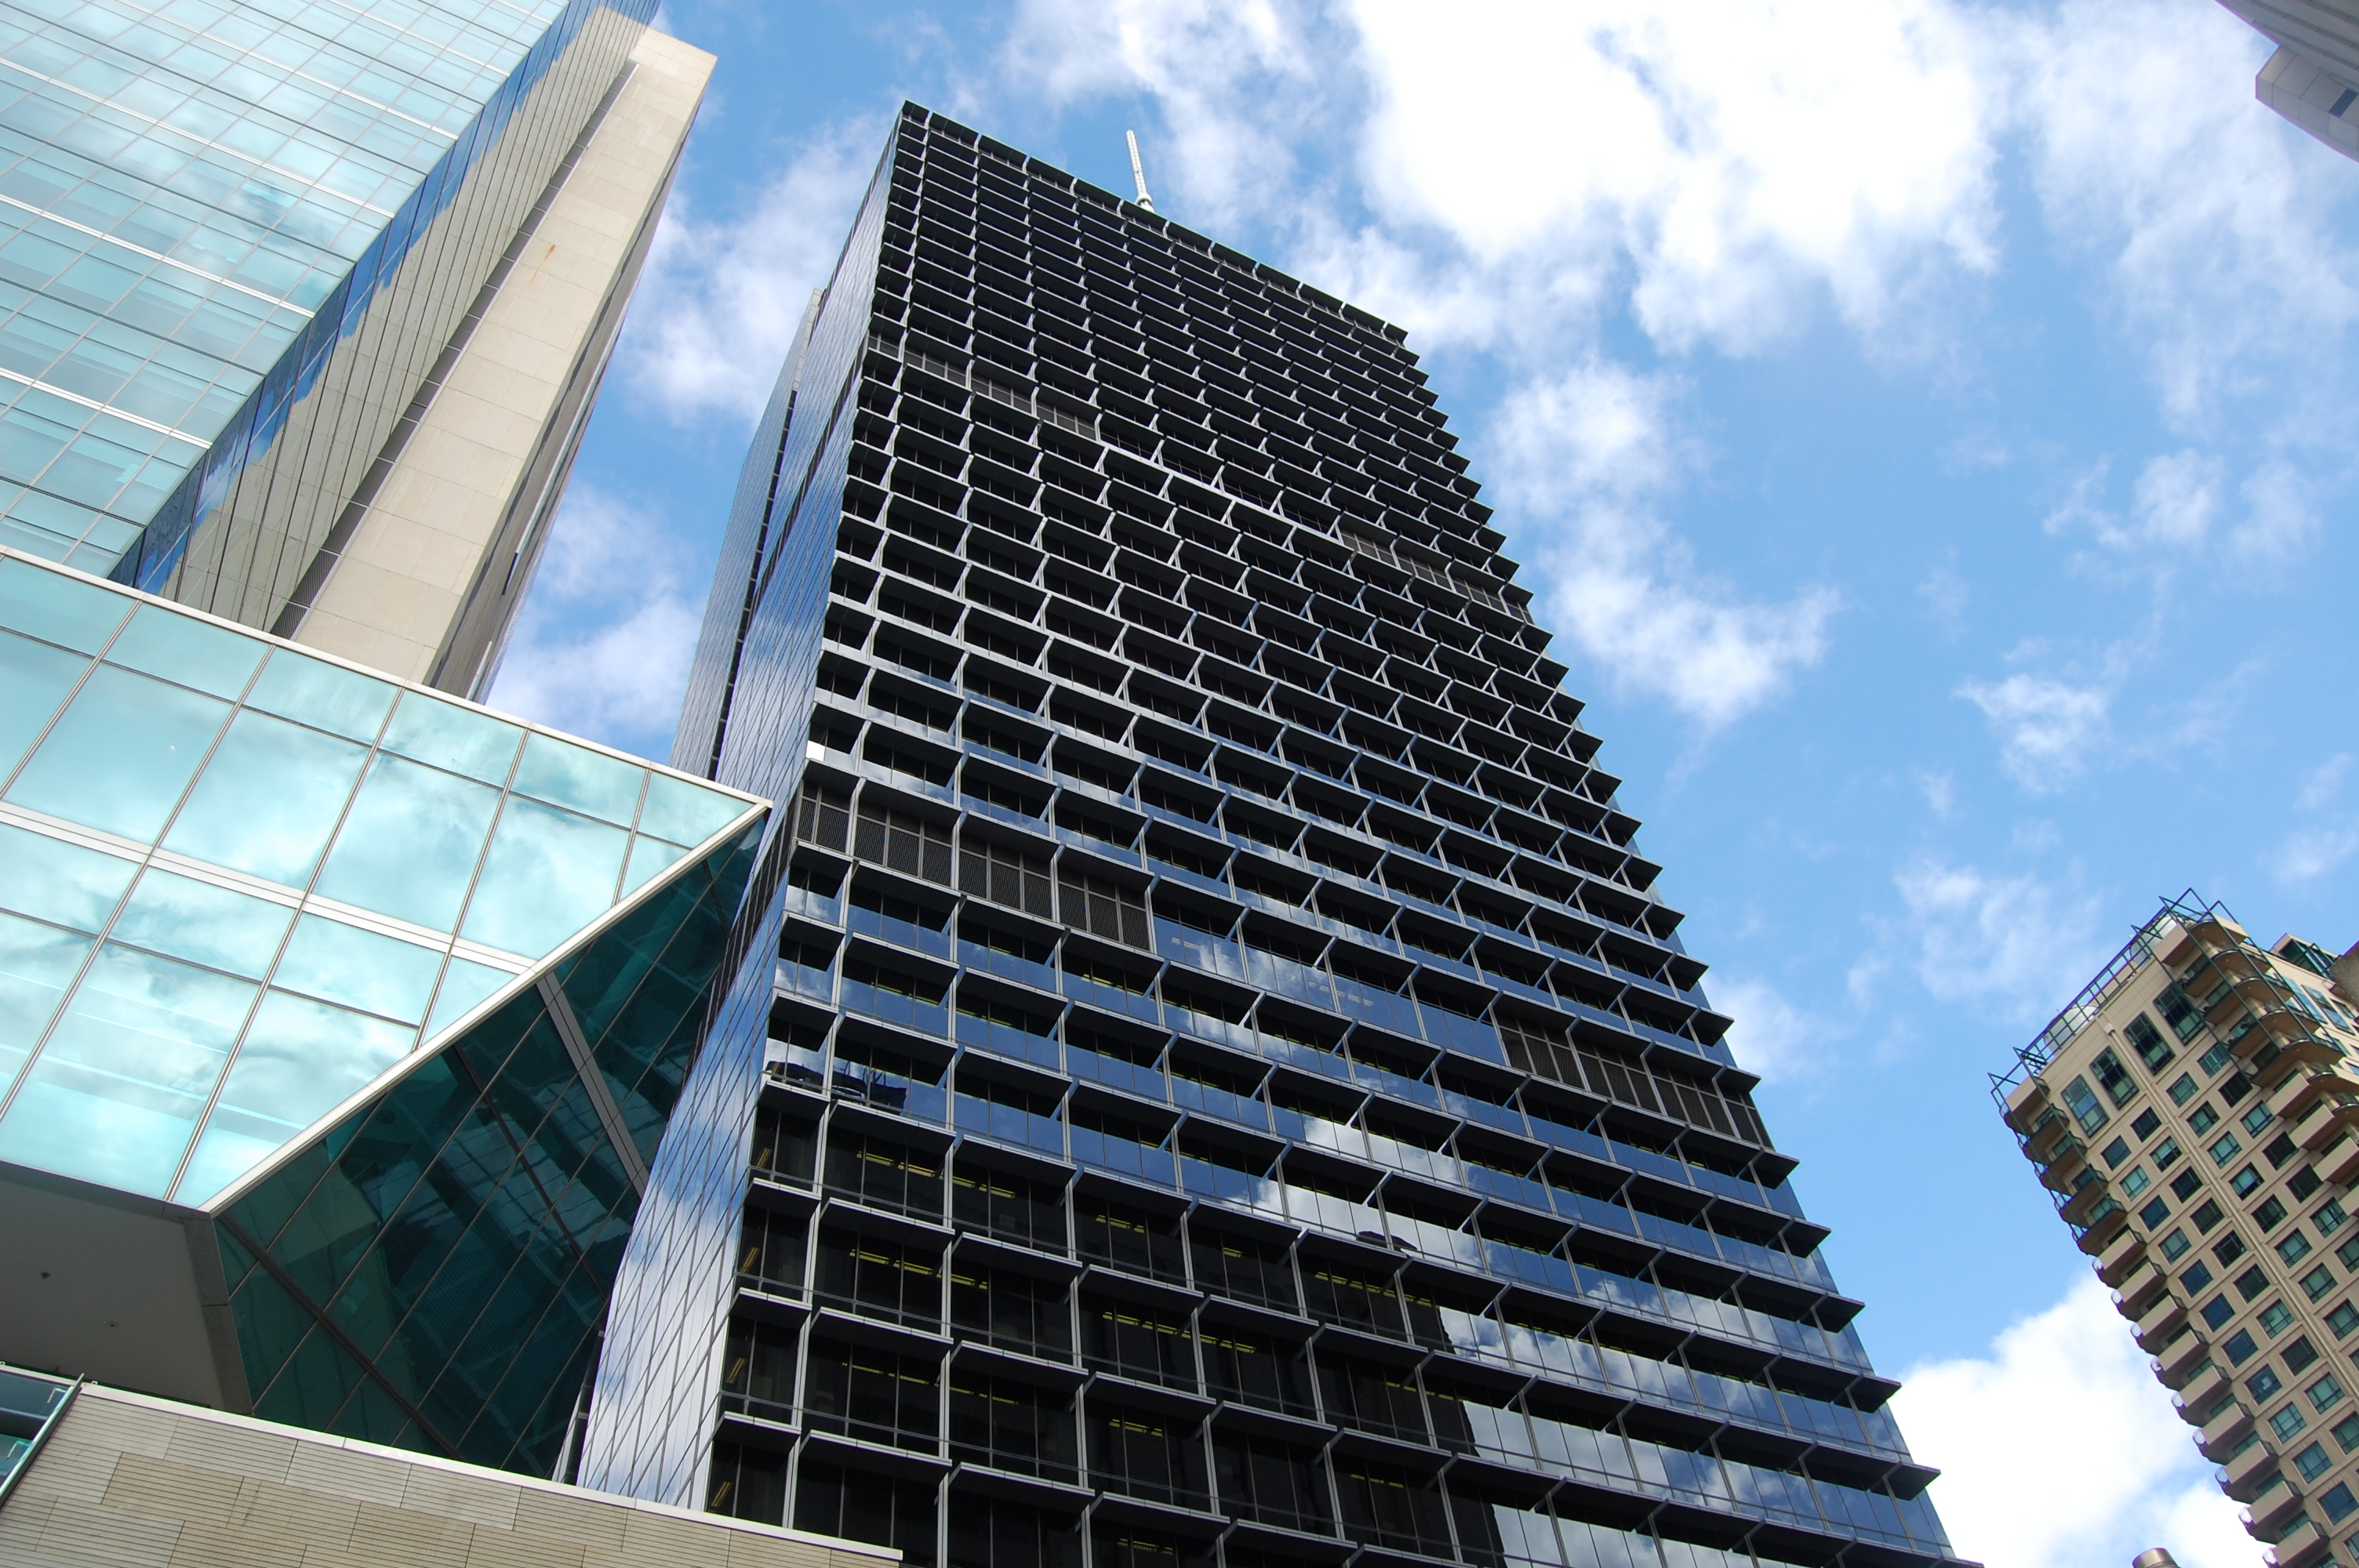 Photoelectric Curtain Wall Market Report: Delivering Growth Analysis with Key Trends, Top Companies and Forecast 2023